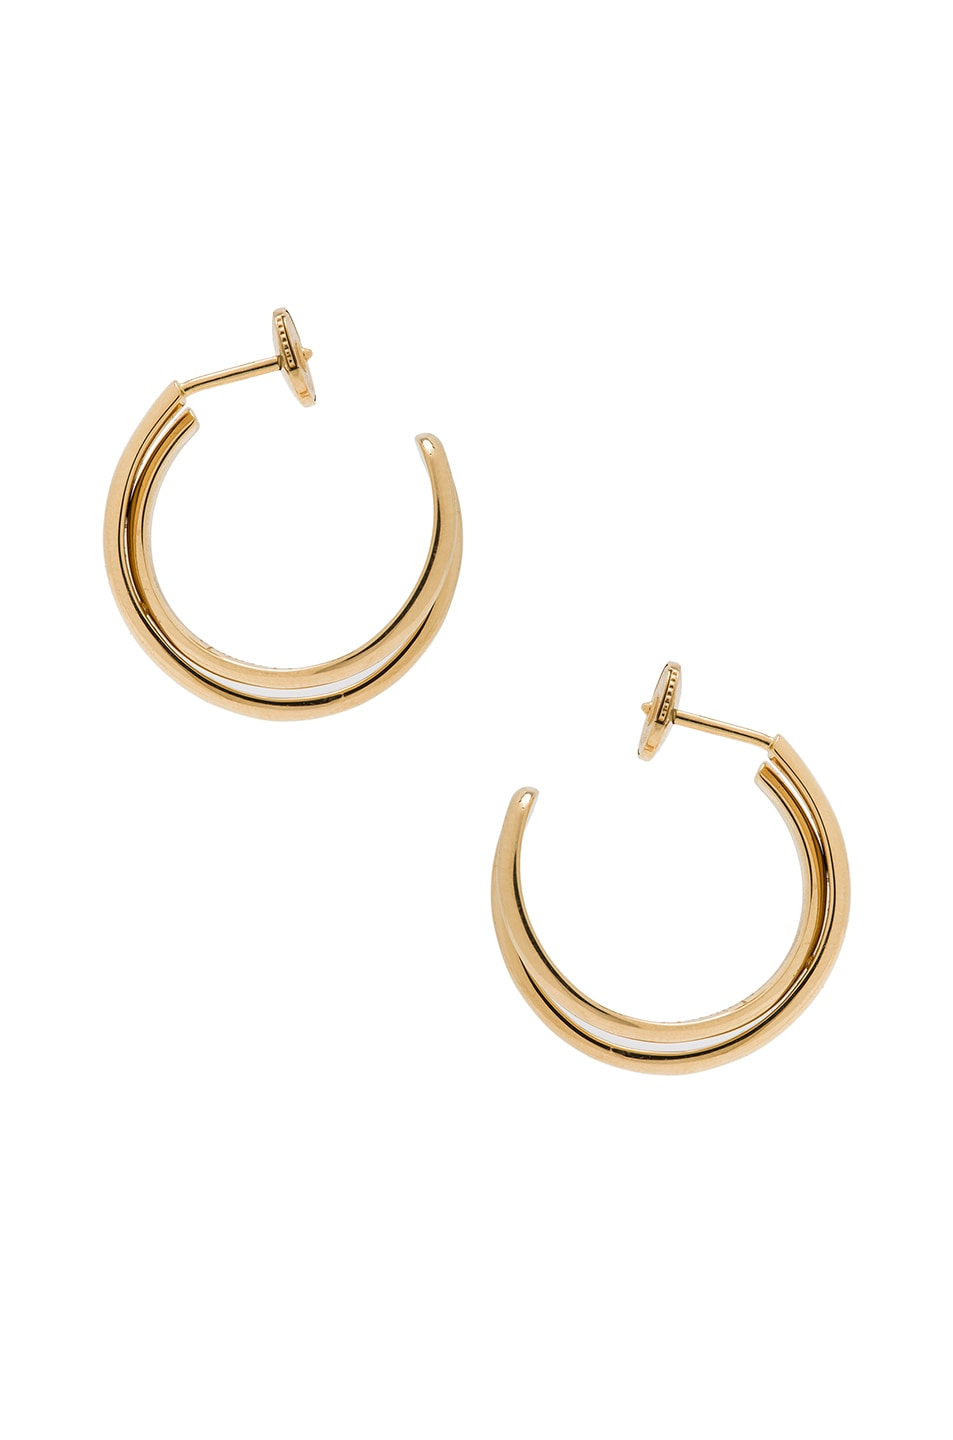 Image 1 of Maison Margiela Fine Twisted Earrings in 18k Yellow Gold